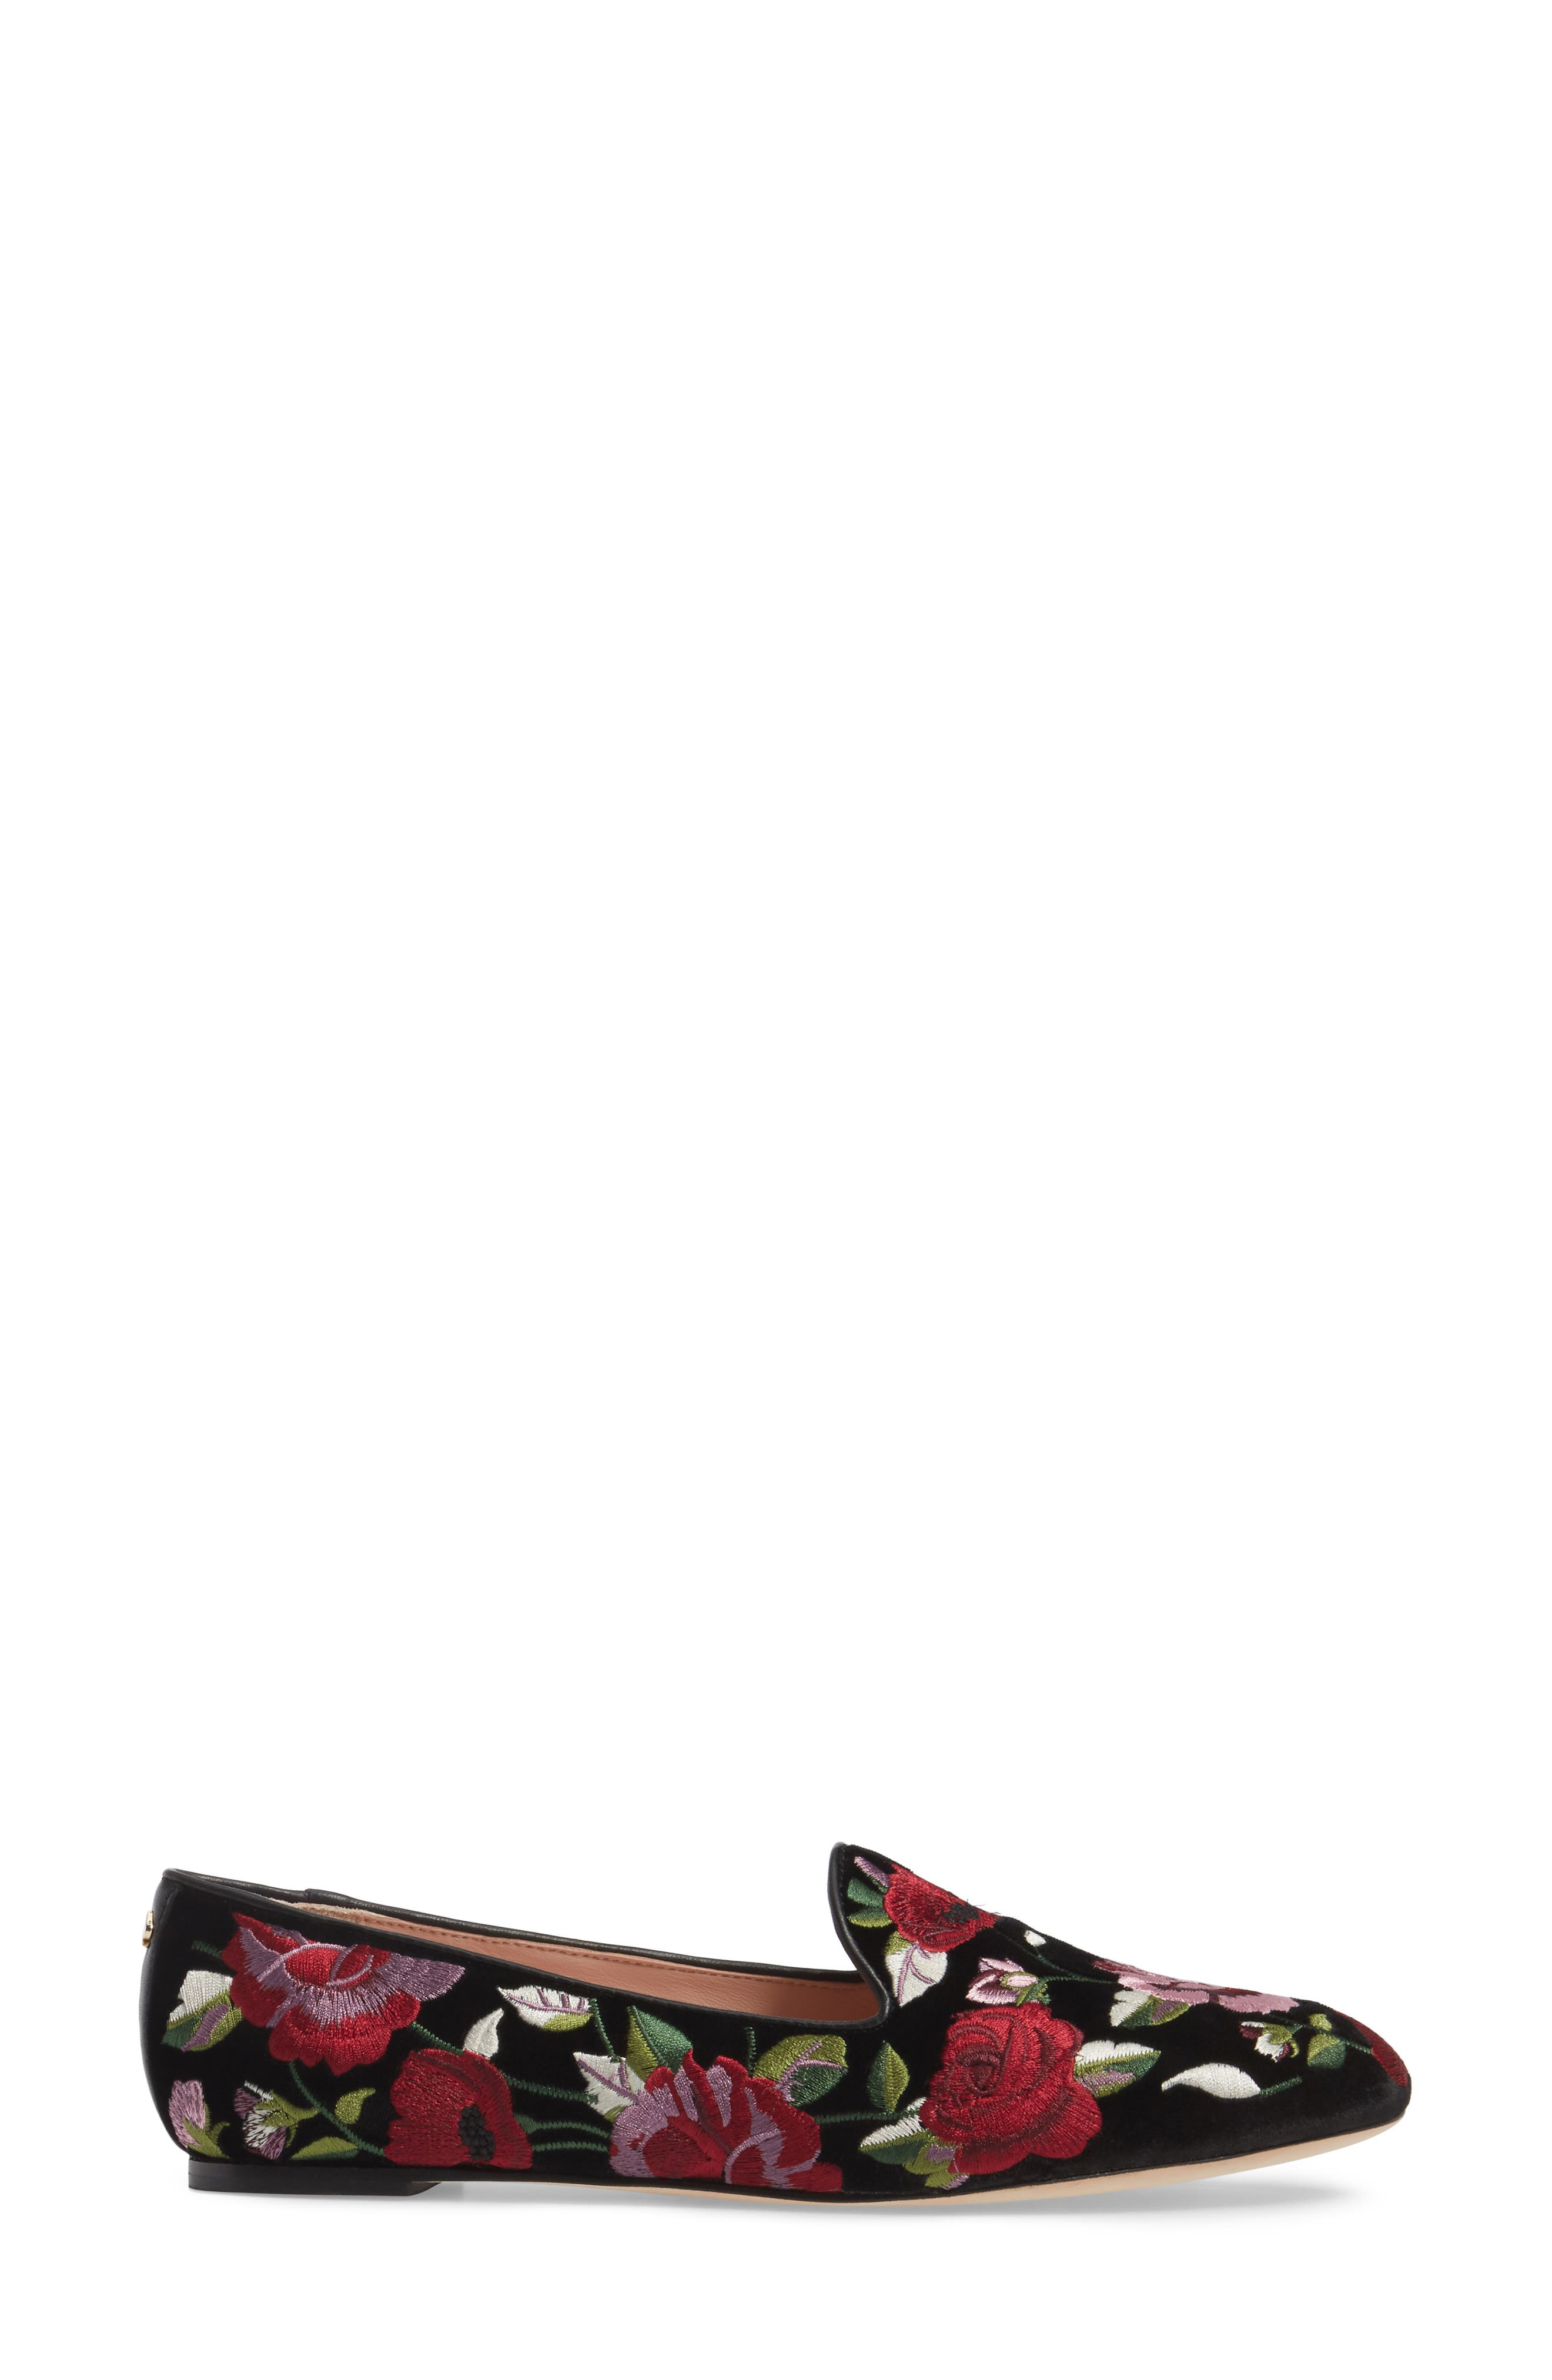 Alternate Image 3  - kate spade new york swinton embroidered loafer (Women)